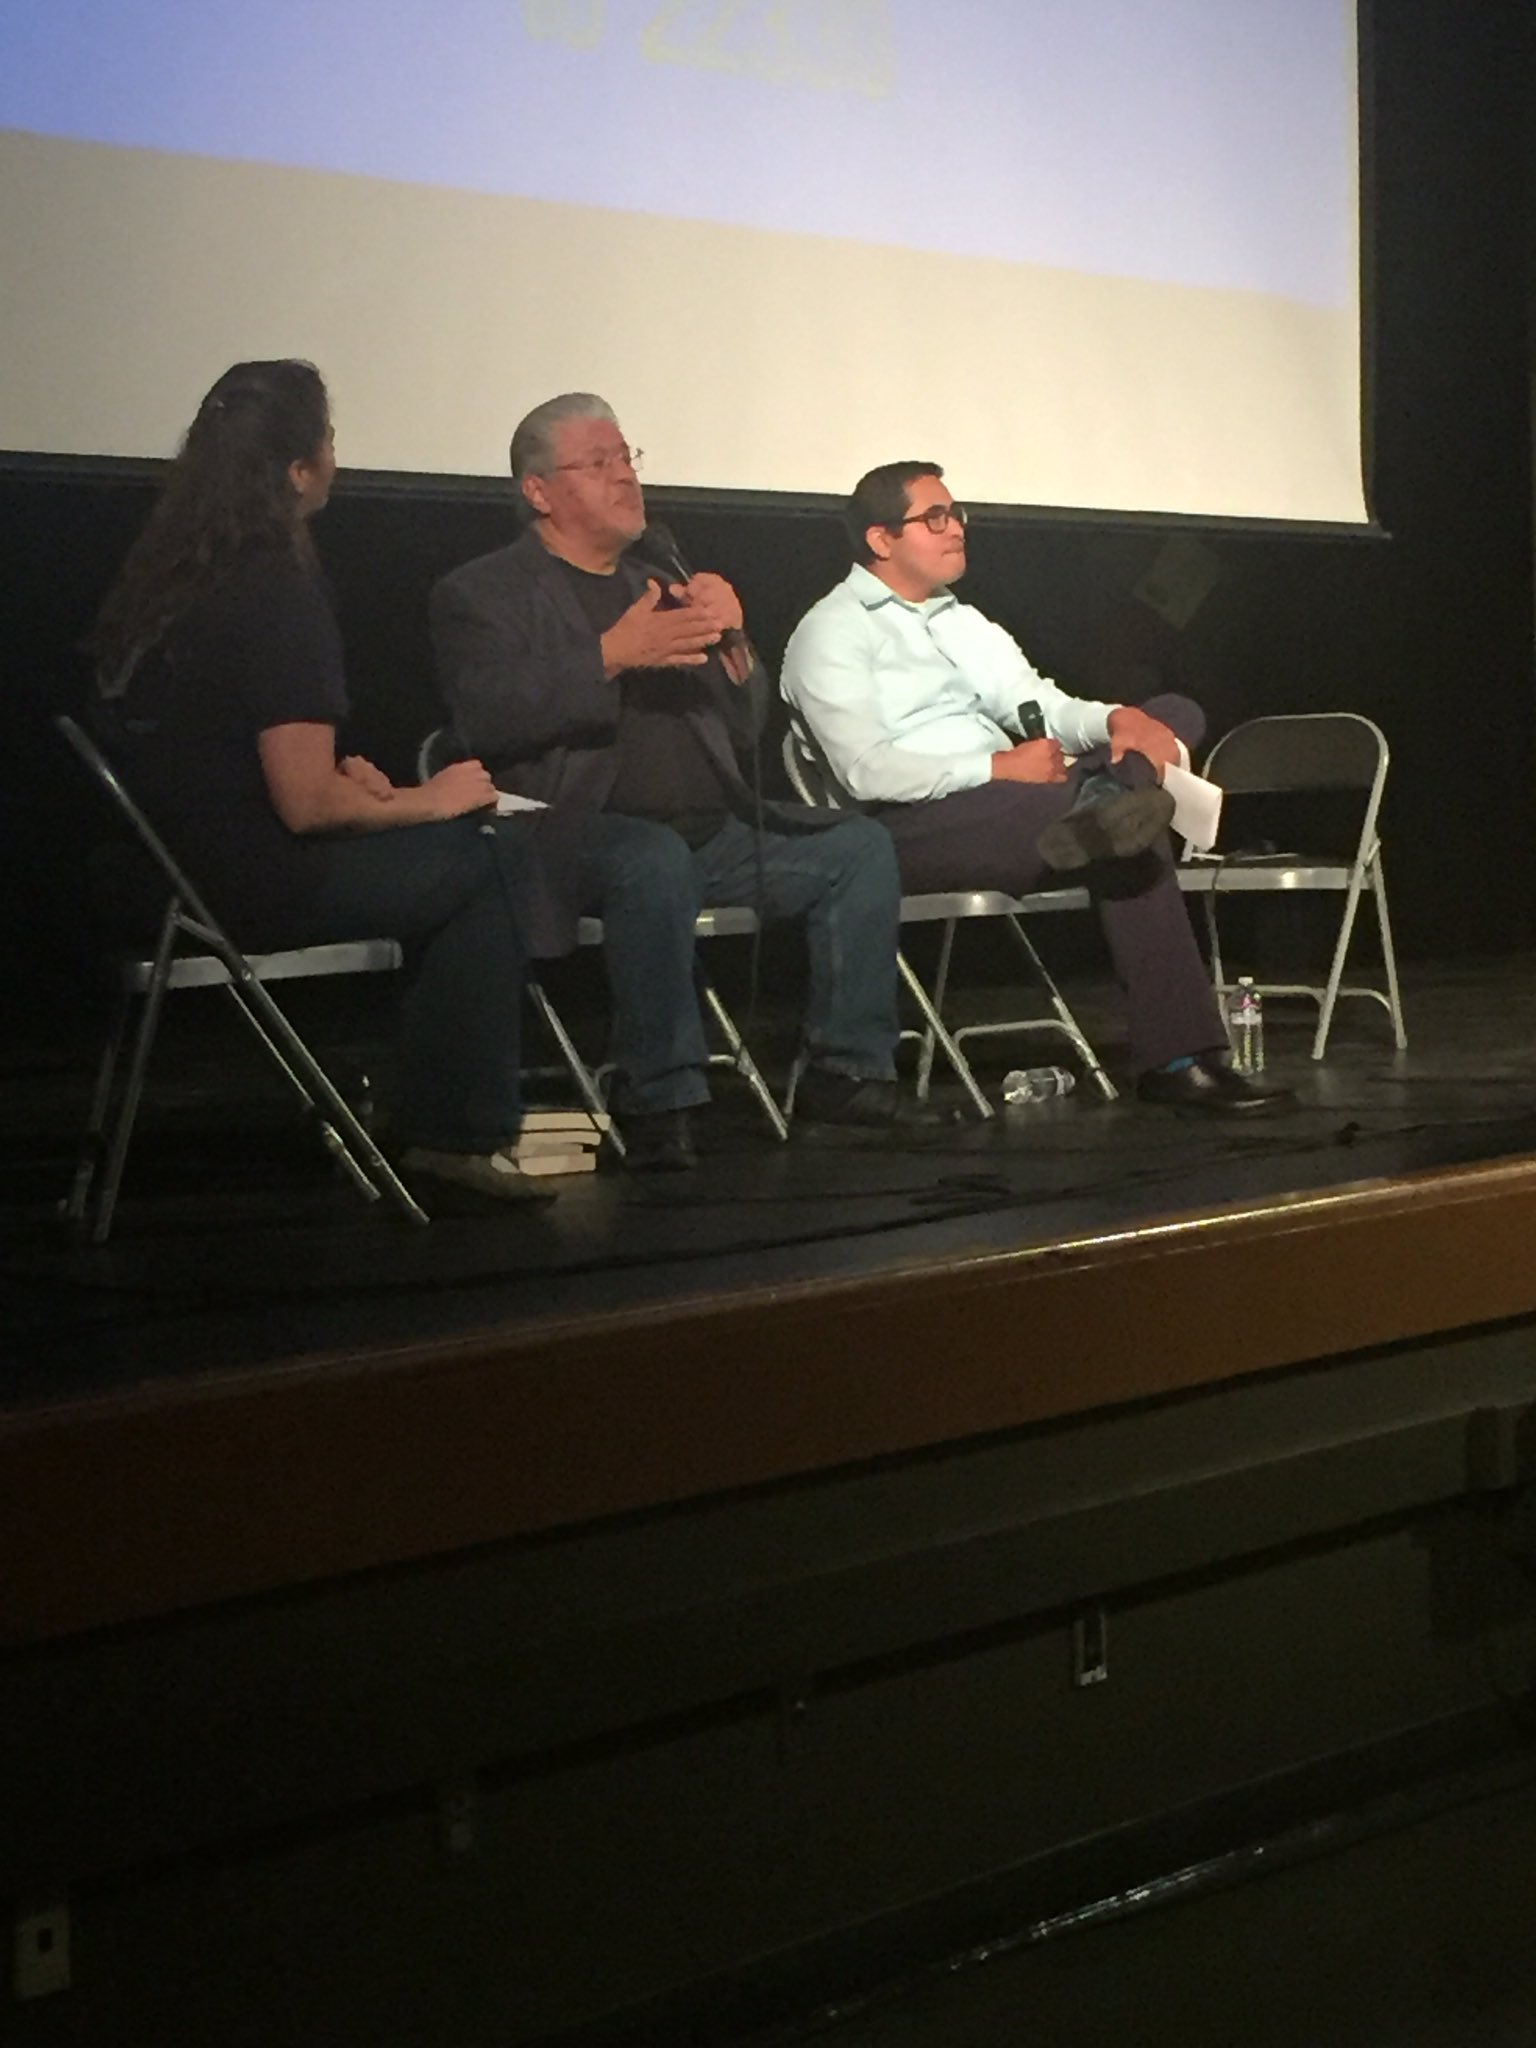 How can we 'see' the invisible among us? @MKHtweet w @luisjrodriguez & @LAHomeless rep Ramon Flores. #empathyLA https://t.co/OLC0vwiHNc